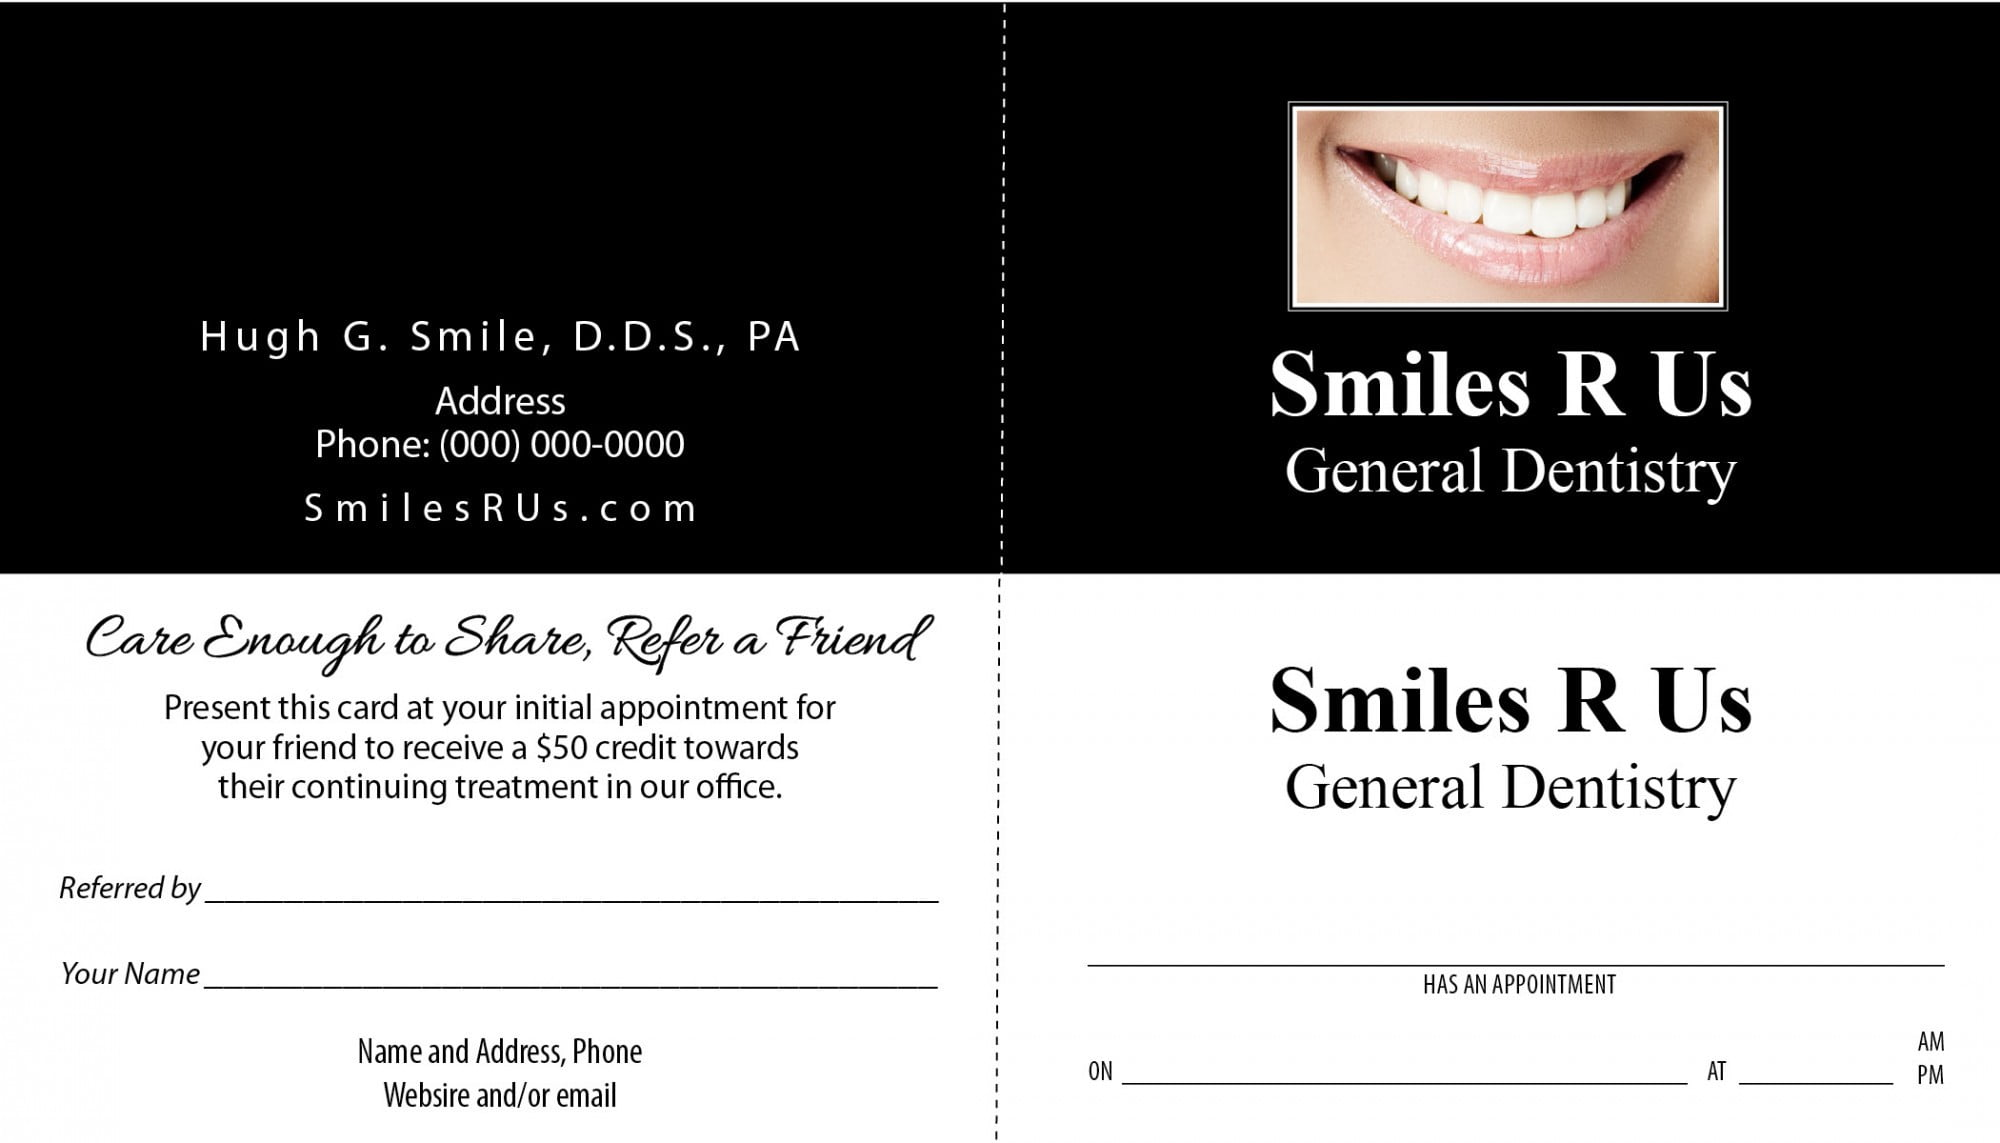 Dental-Care-to-Share-card-11-e1431468309605.jpg